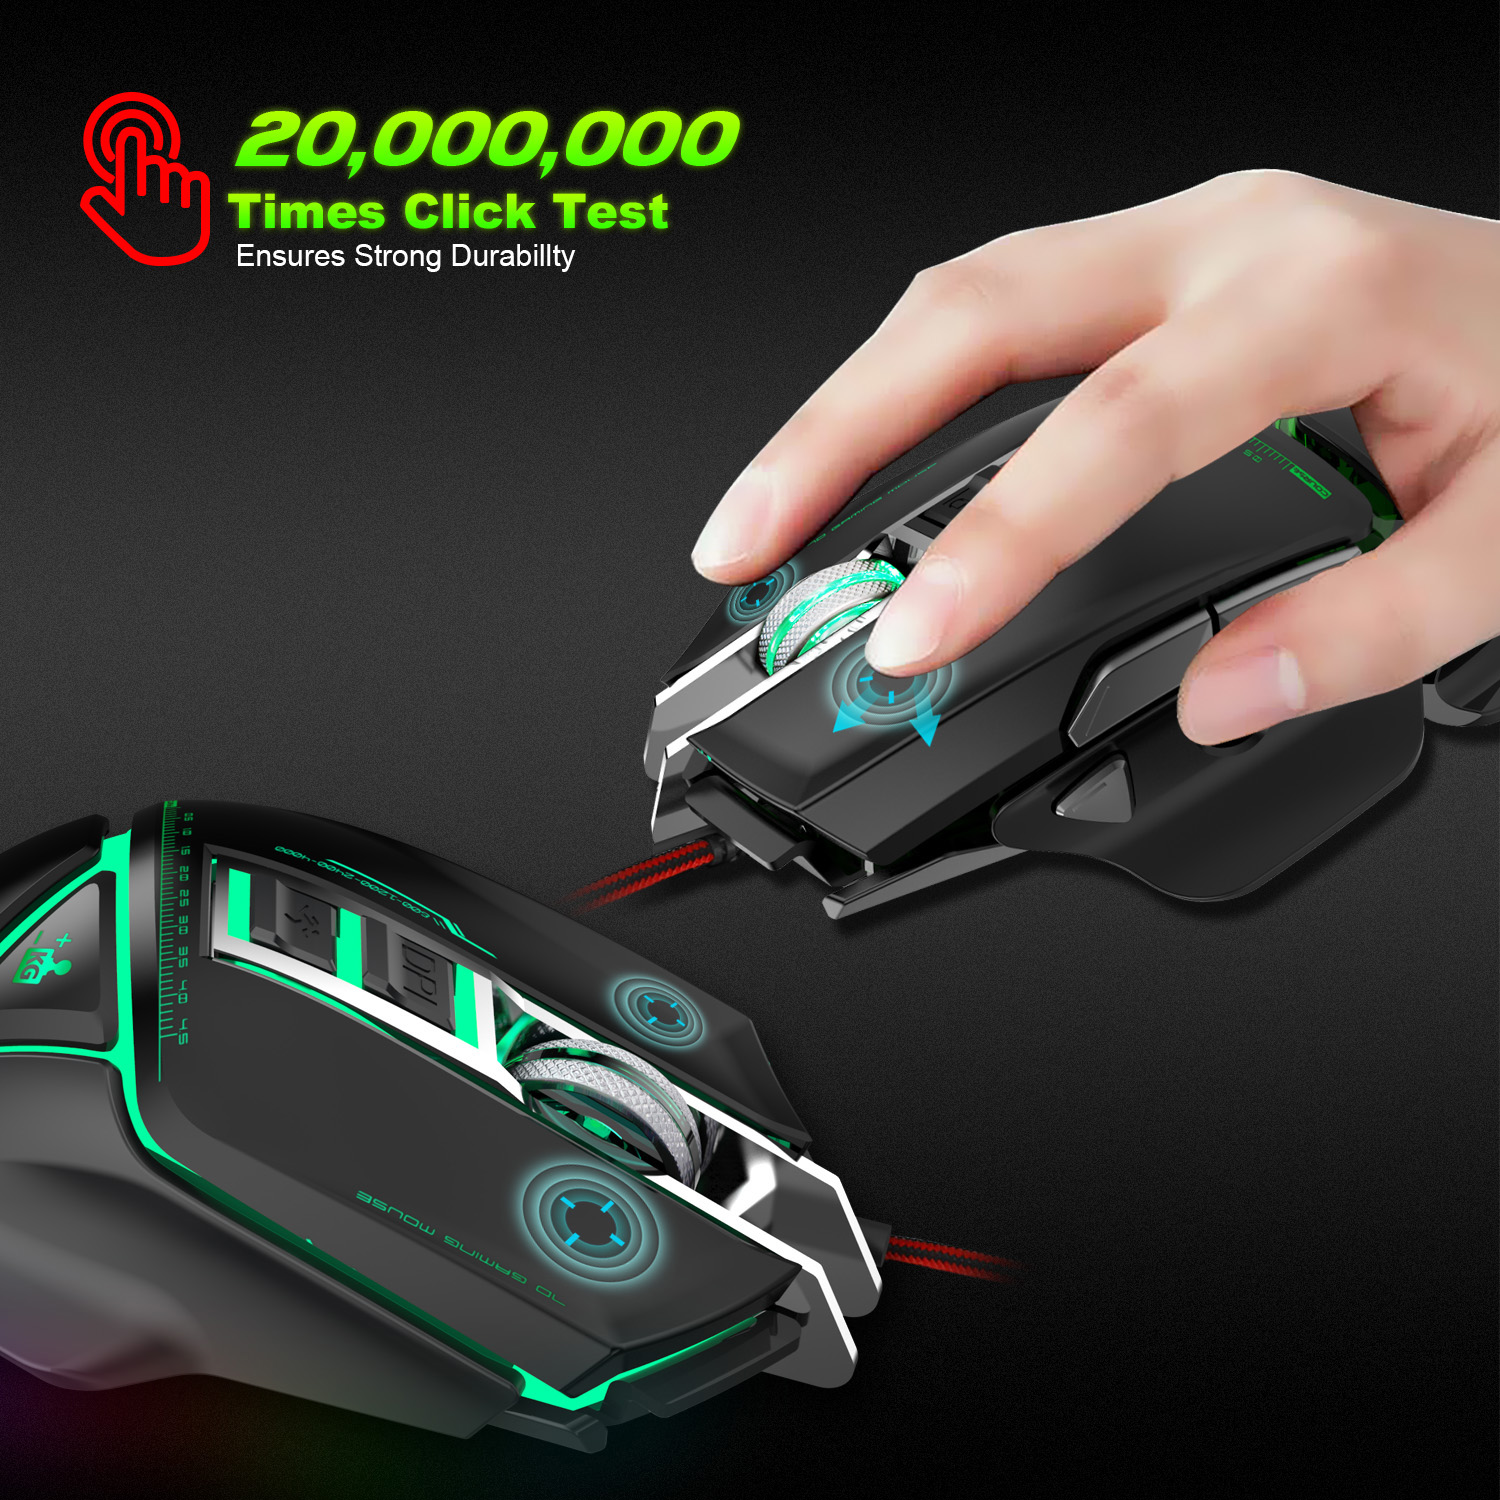 ZERODATE USB wired mouse Ergonomics 3200DPI adjustable Mechanical Mouse Beetle Creative 3D Gaming Mice RGB Cool Backlight Night in Mice from Computer Office